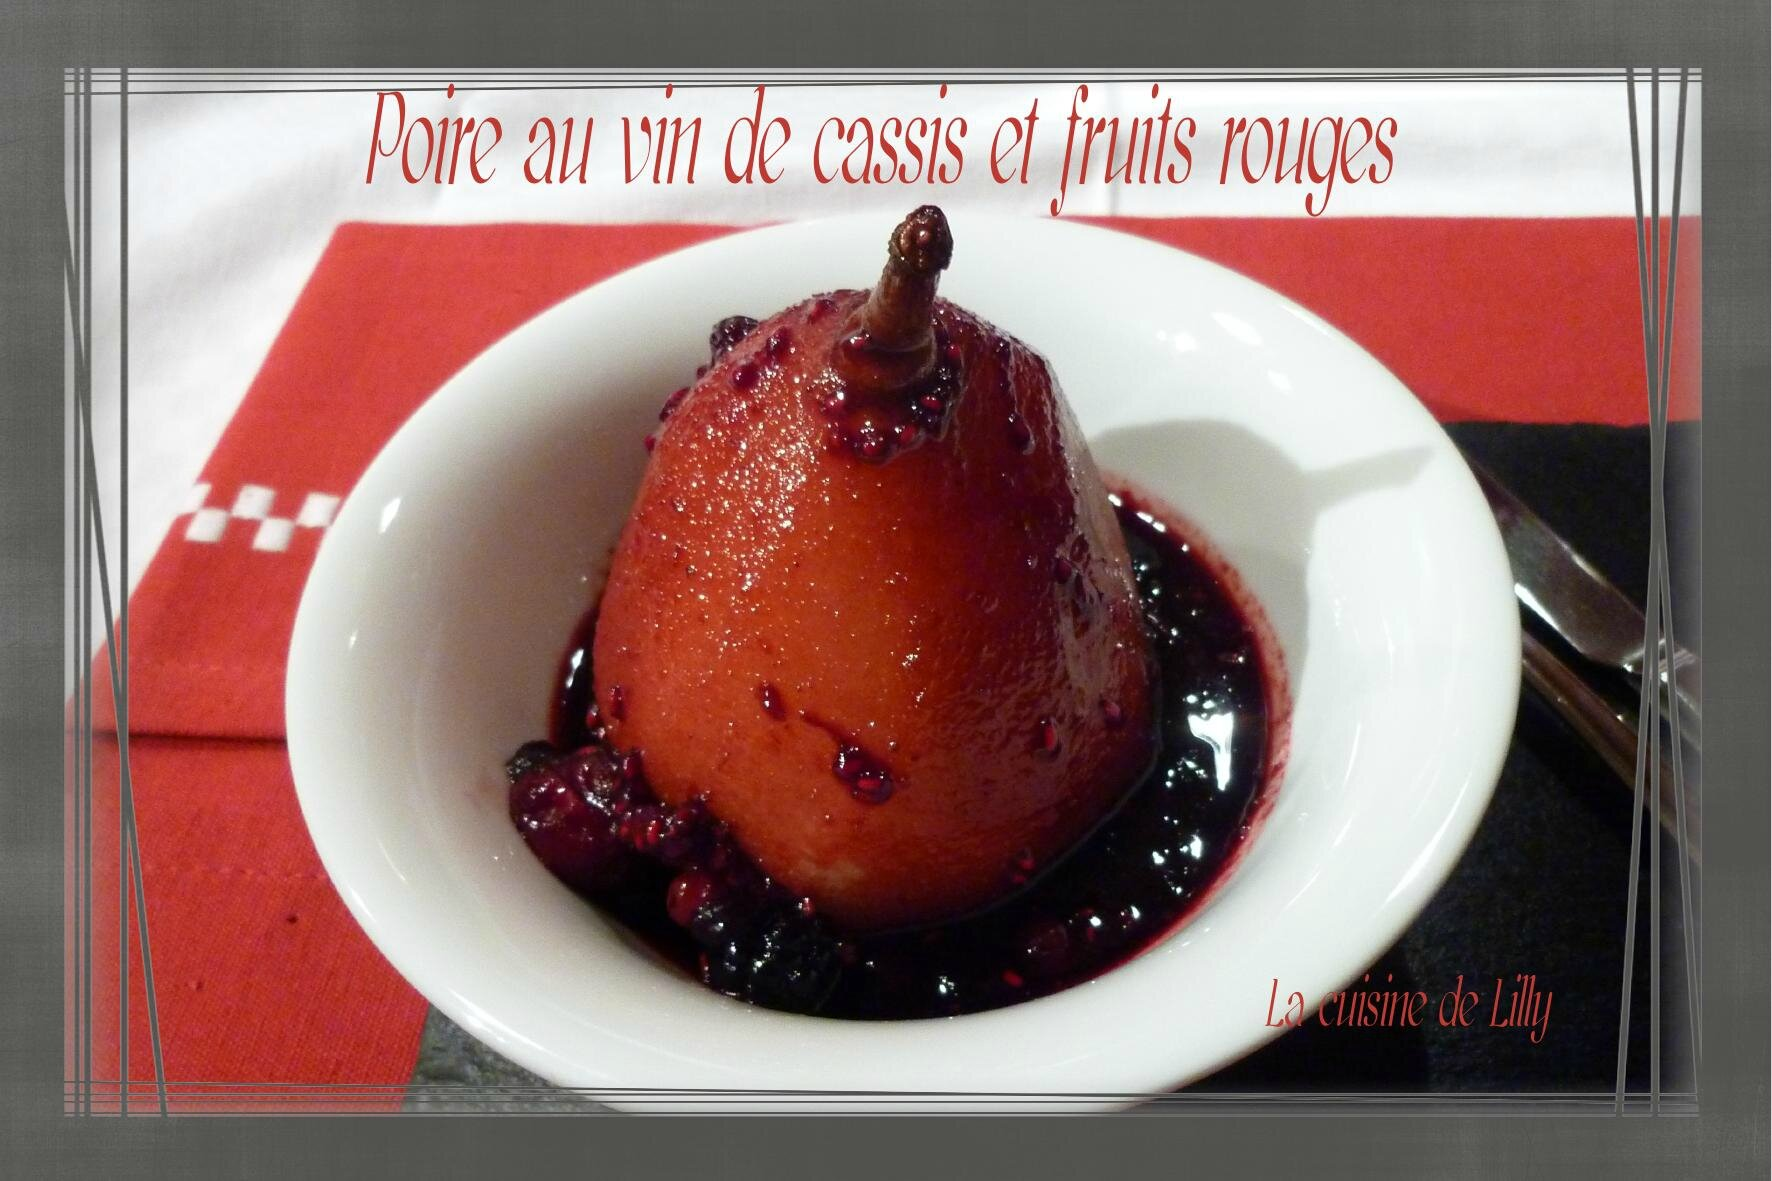 poires au vin de cassis et aux fruits rouges la cuisine de lilly. Black Bedroom Furniture Sets. Home Design Ideas